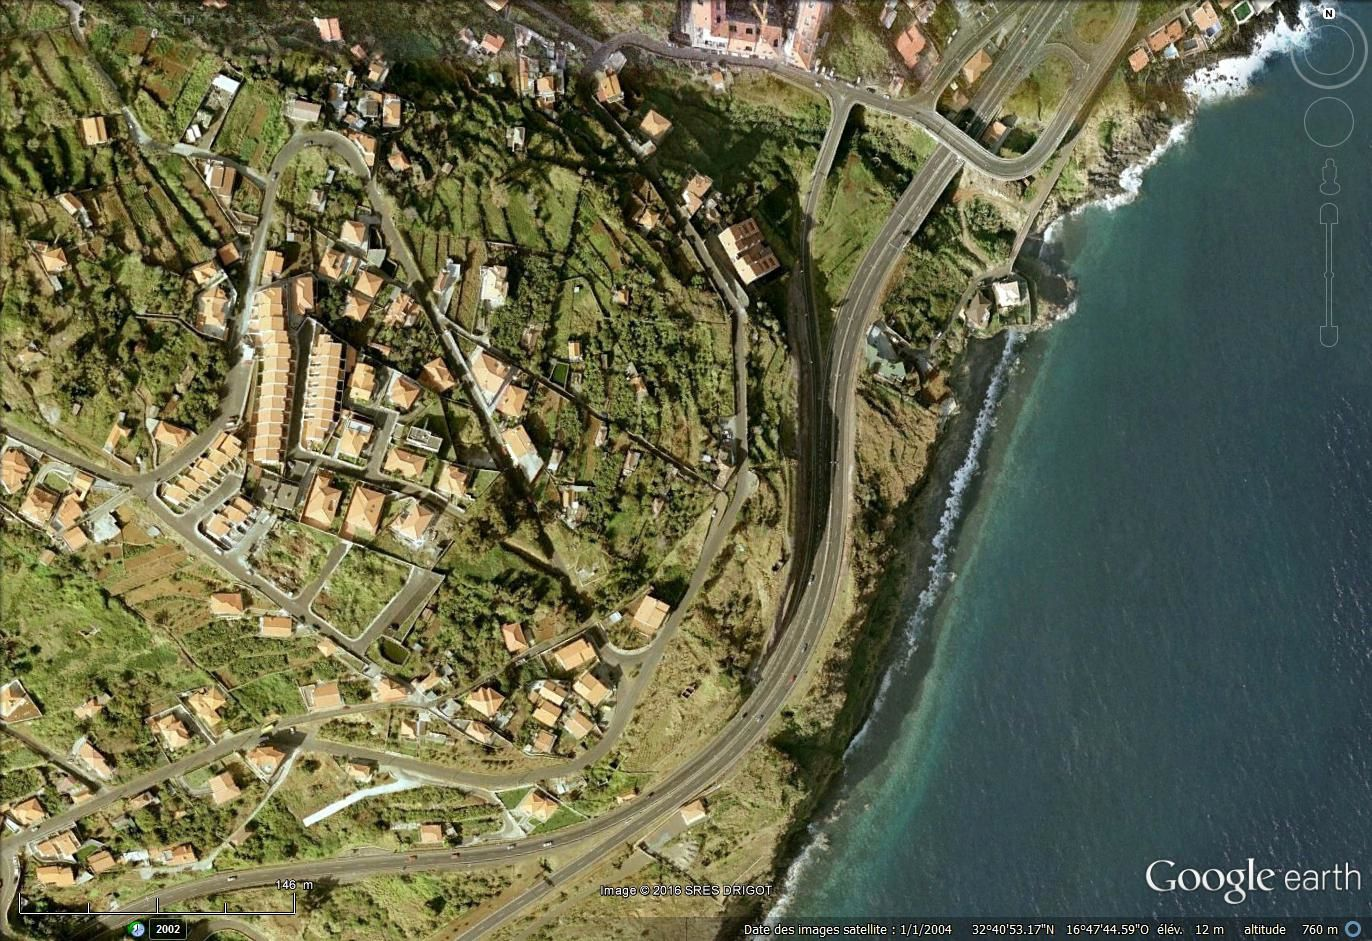 Madère via via Google earth